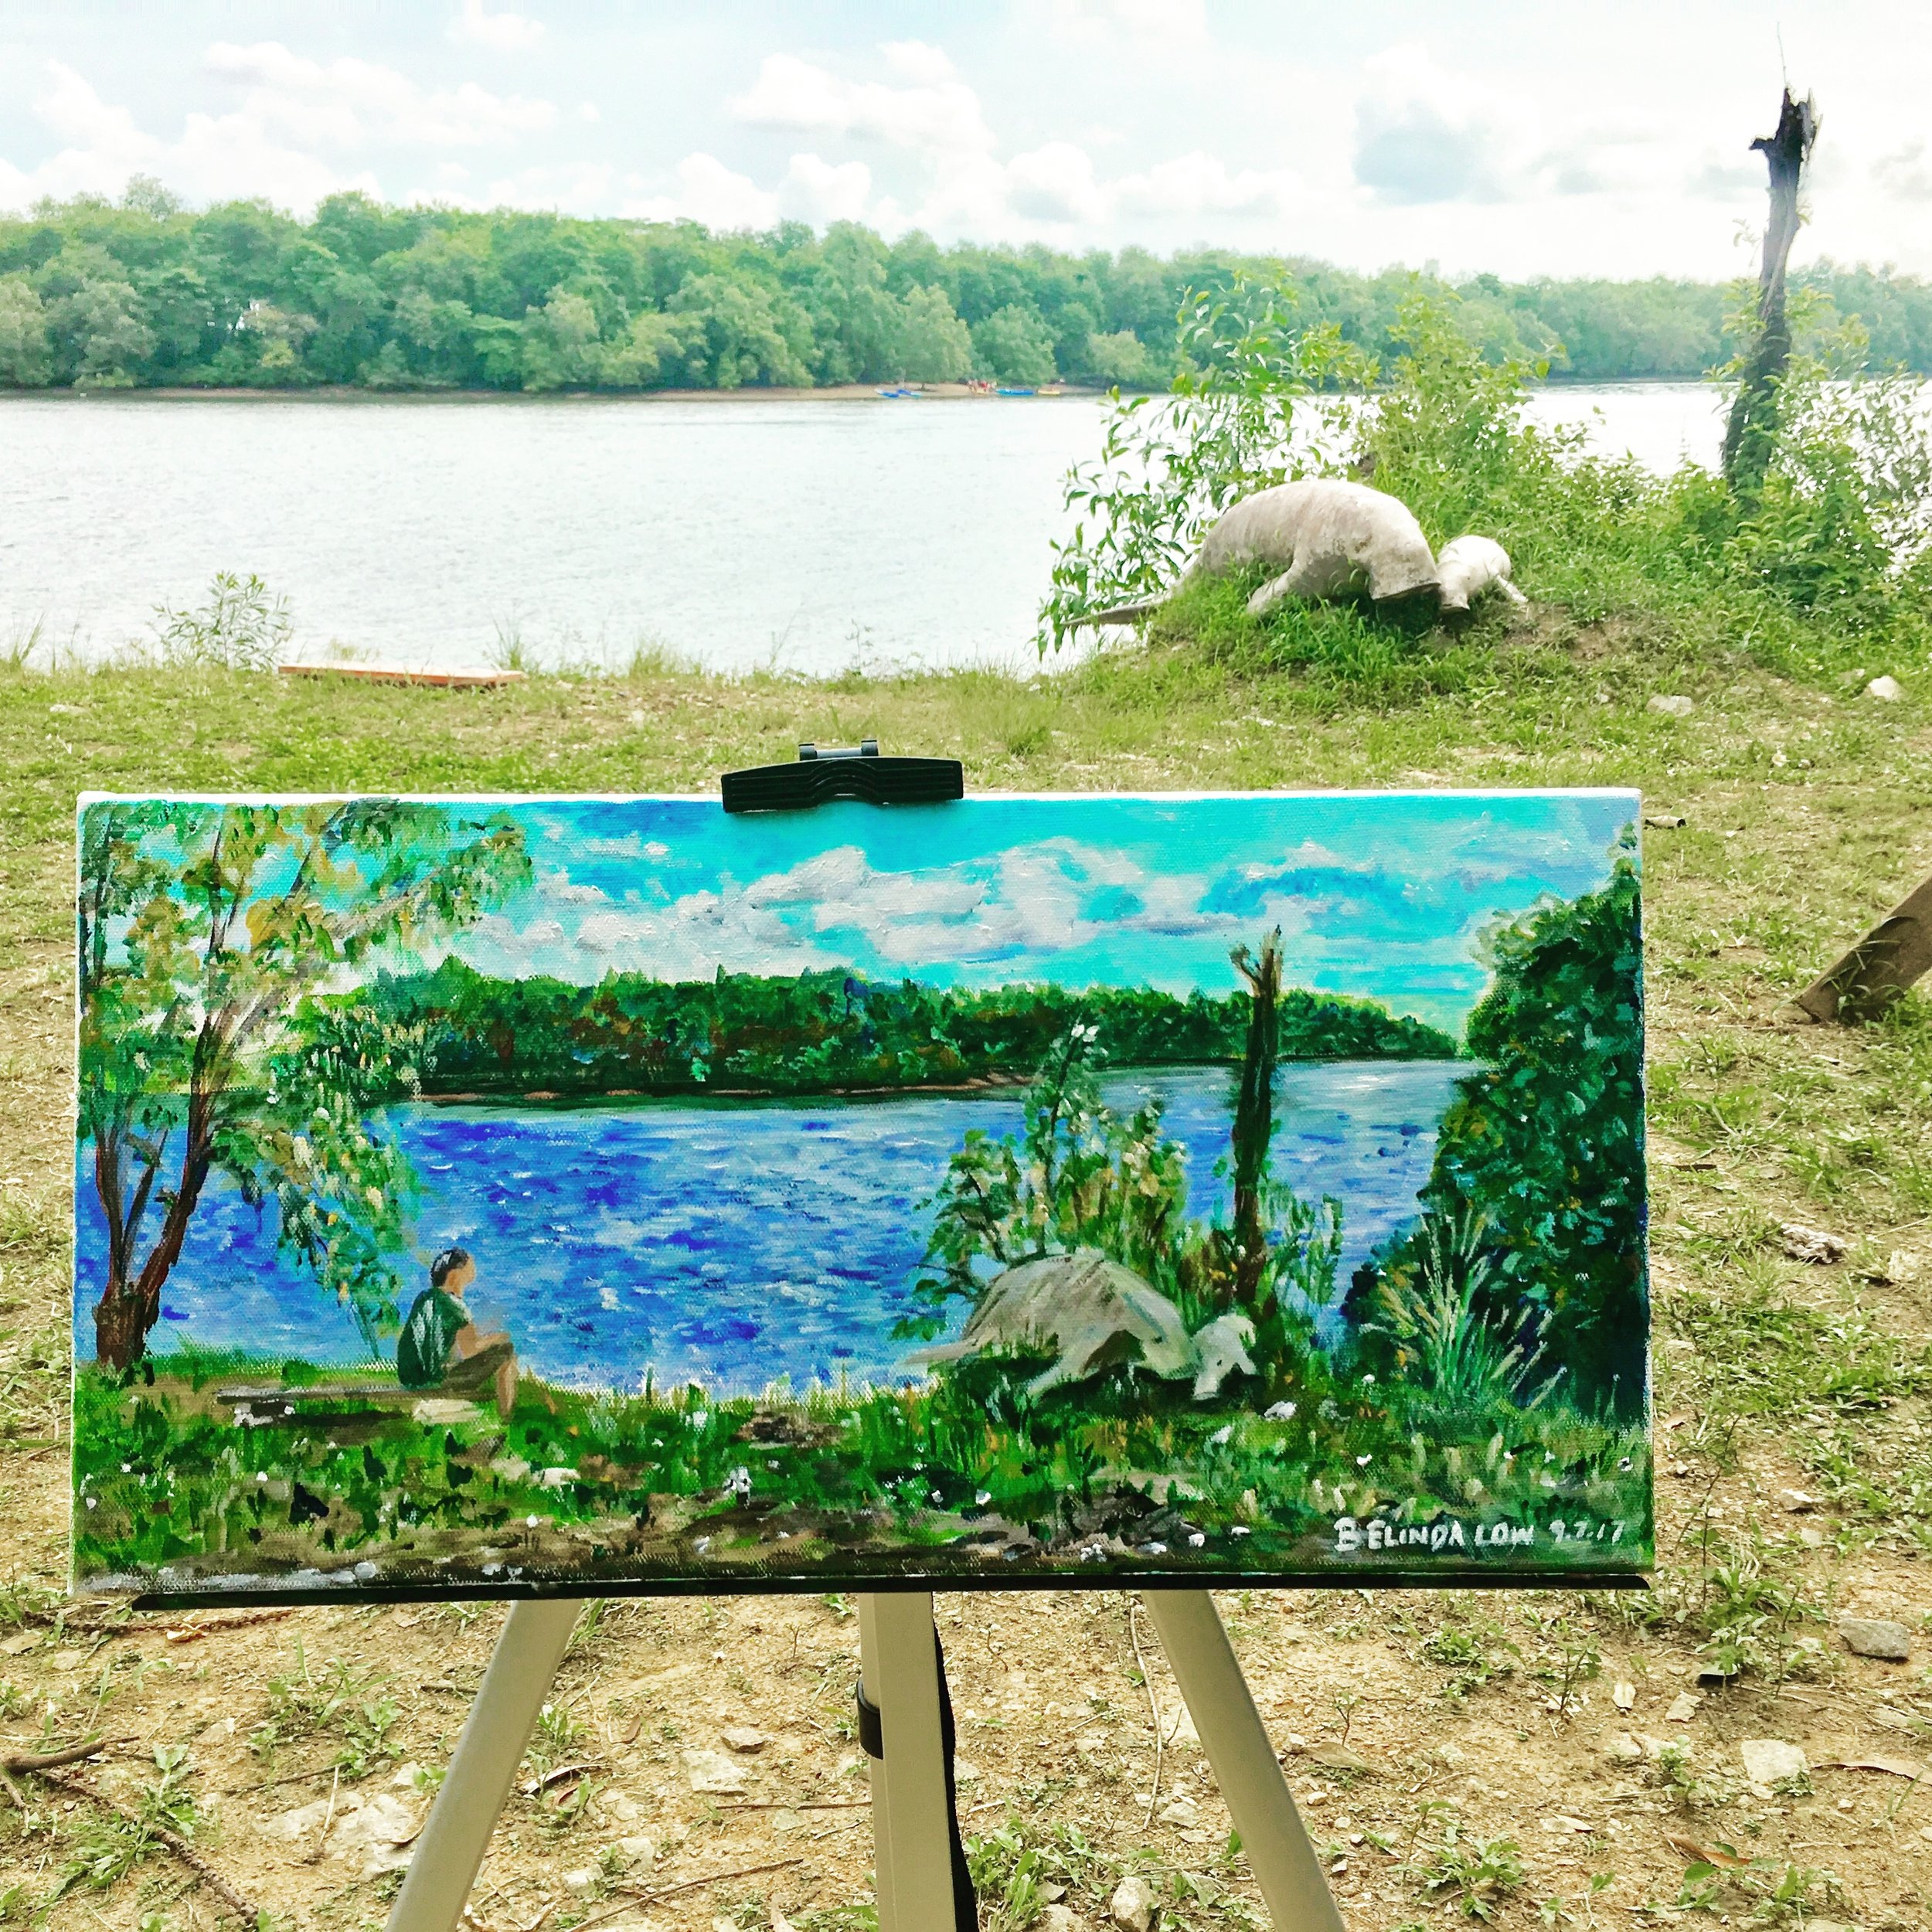 "Ubin My Home - 20"" x 16"" acrylic on canvas done en pleinair right there by the shore...It was a blissful afternoon as I sat in the sun soaking up the peacefulness around me just doing what I love most..."